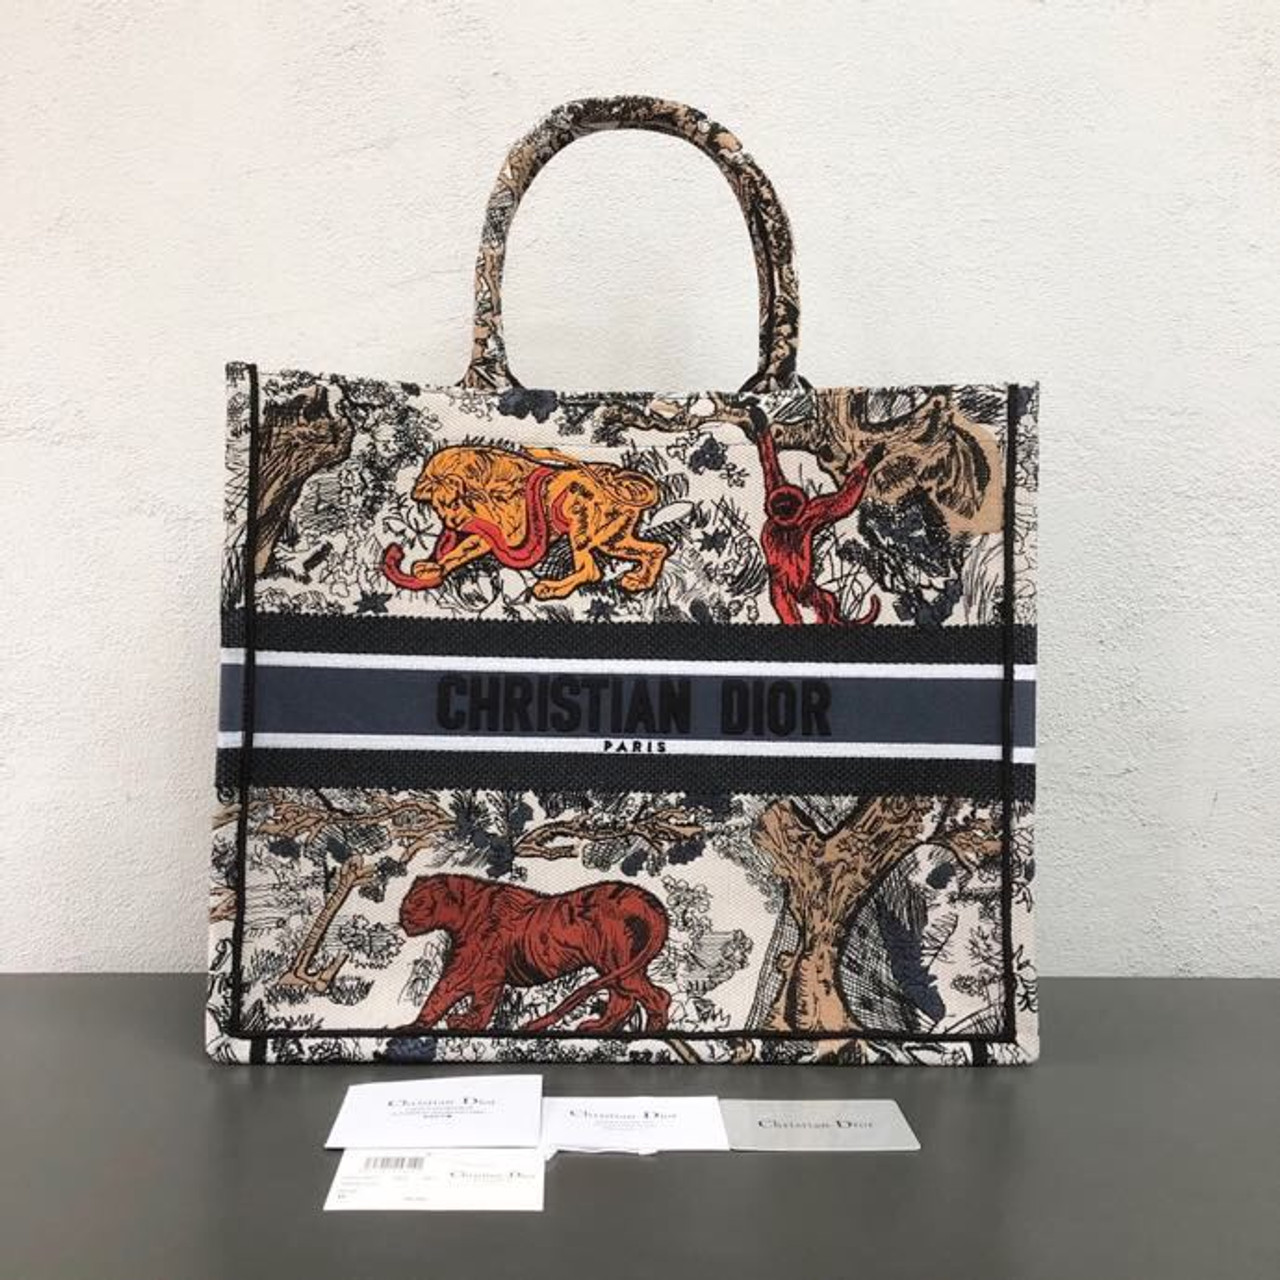 0432ac3e463 Christian Dior Book Tote Bag 42cm Tiger Toile de Jouy Chinese Lunar New  Year Canvas Spring